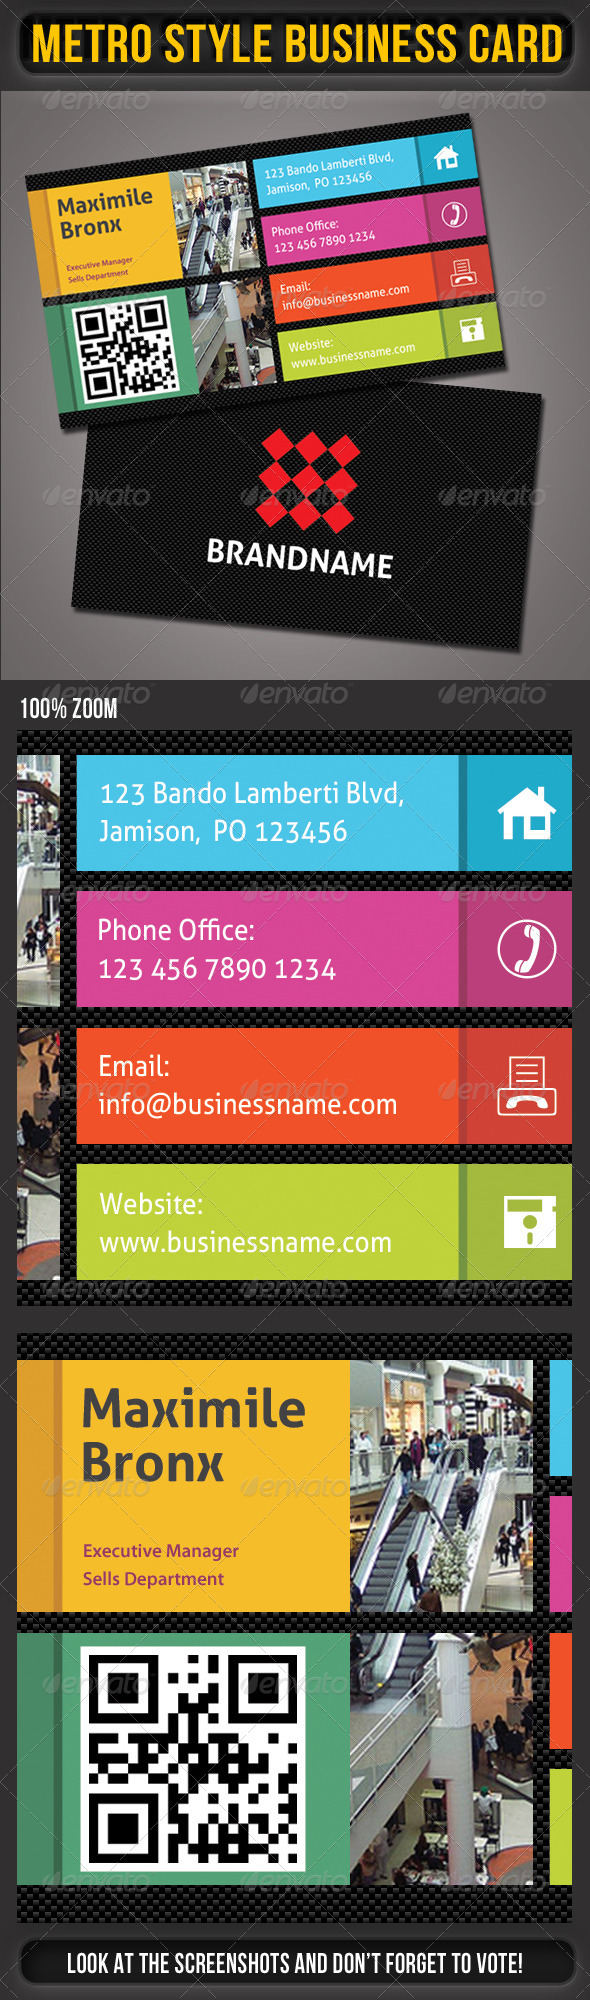 Metro Business Card 01